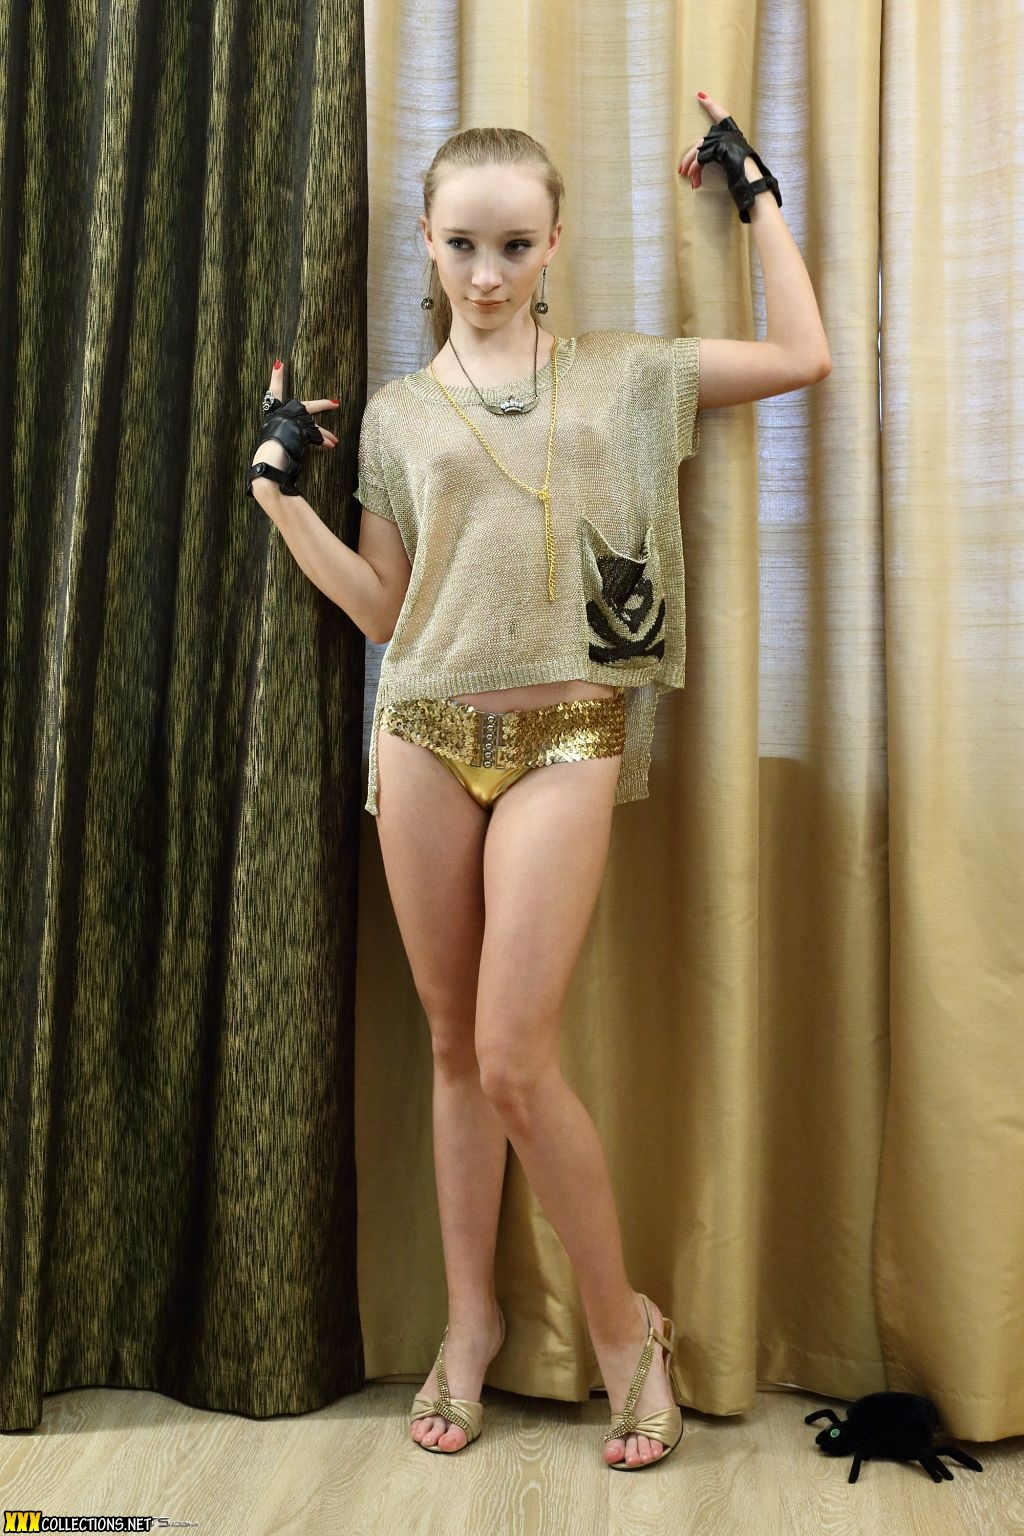 Silver Starlets Alice Gold 4 X Teenmodels | CLOUDY GIRL PICS